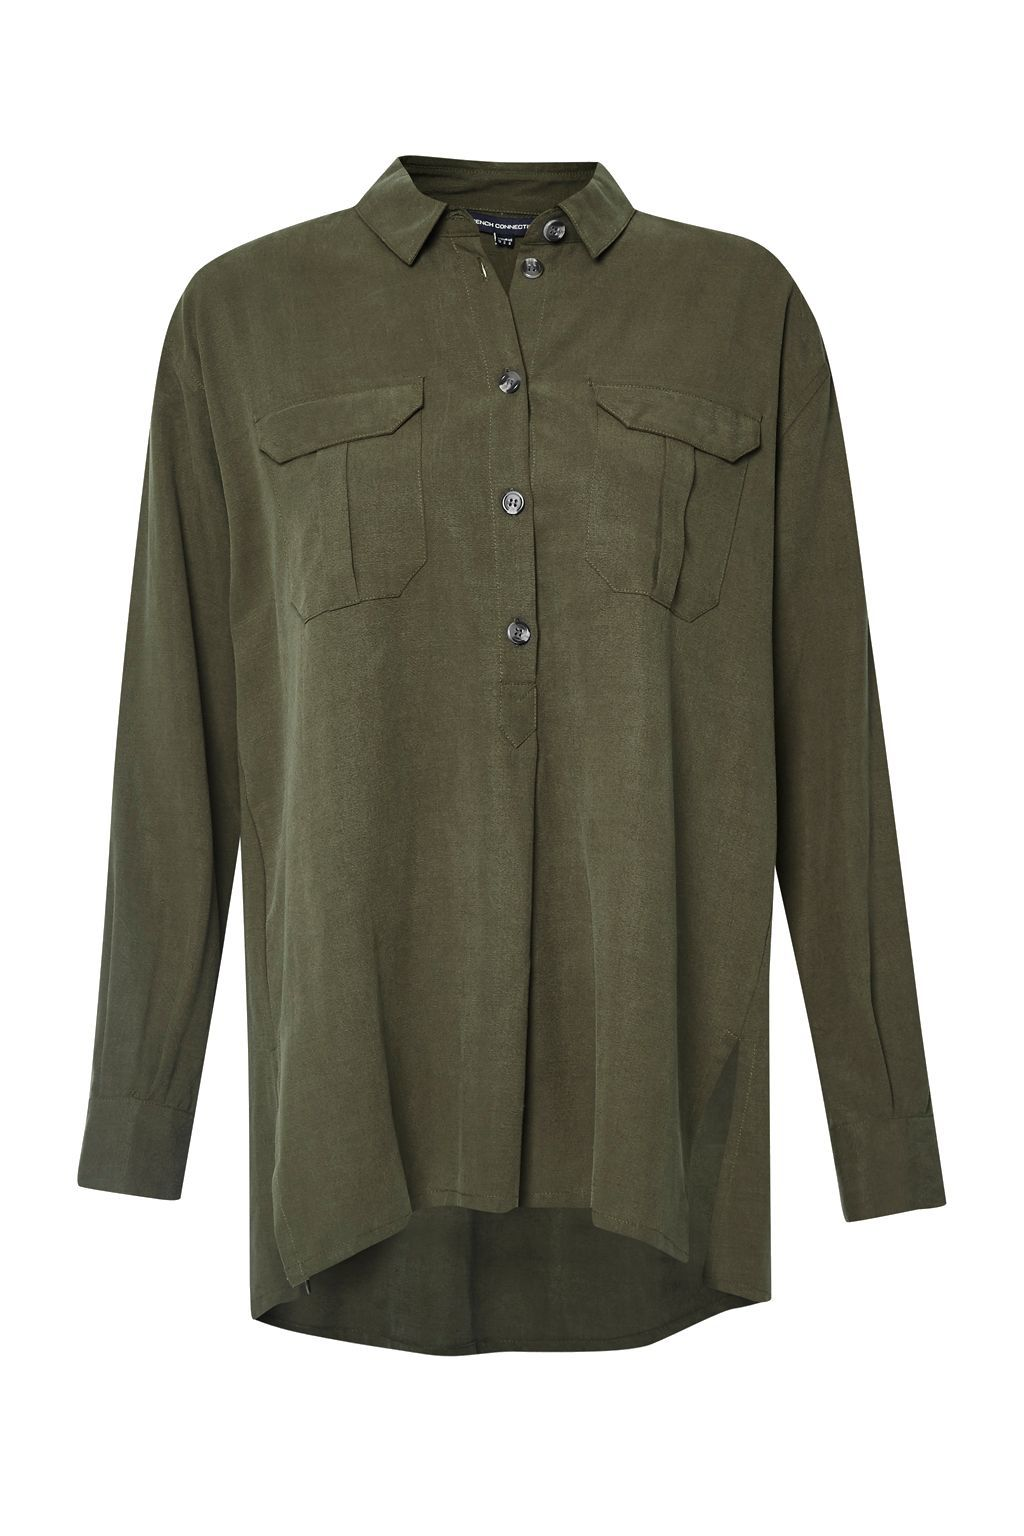 Trooper Tencel Pull Over Shirt, Green - neckline: shirt collar/peter pan/zip with opening; pattern: plain; length: below the bottom; style: shirt; predominant colour: khaki; occasions: casual; fibres: viscose/rayon - 100%; fit: body skimming; sleeve length: long sleeve; sleeve style: standard; pattern type: fabric; texture group: other - light to midweight; wardrobe: basic; season: a/w 2016